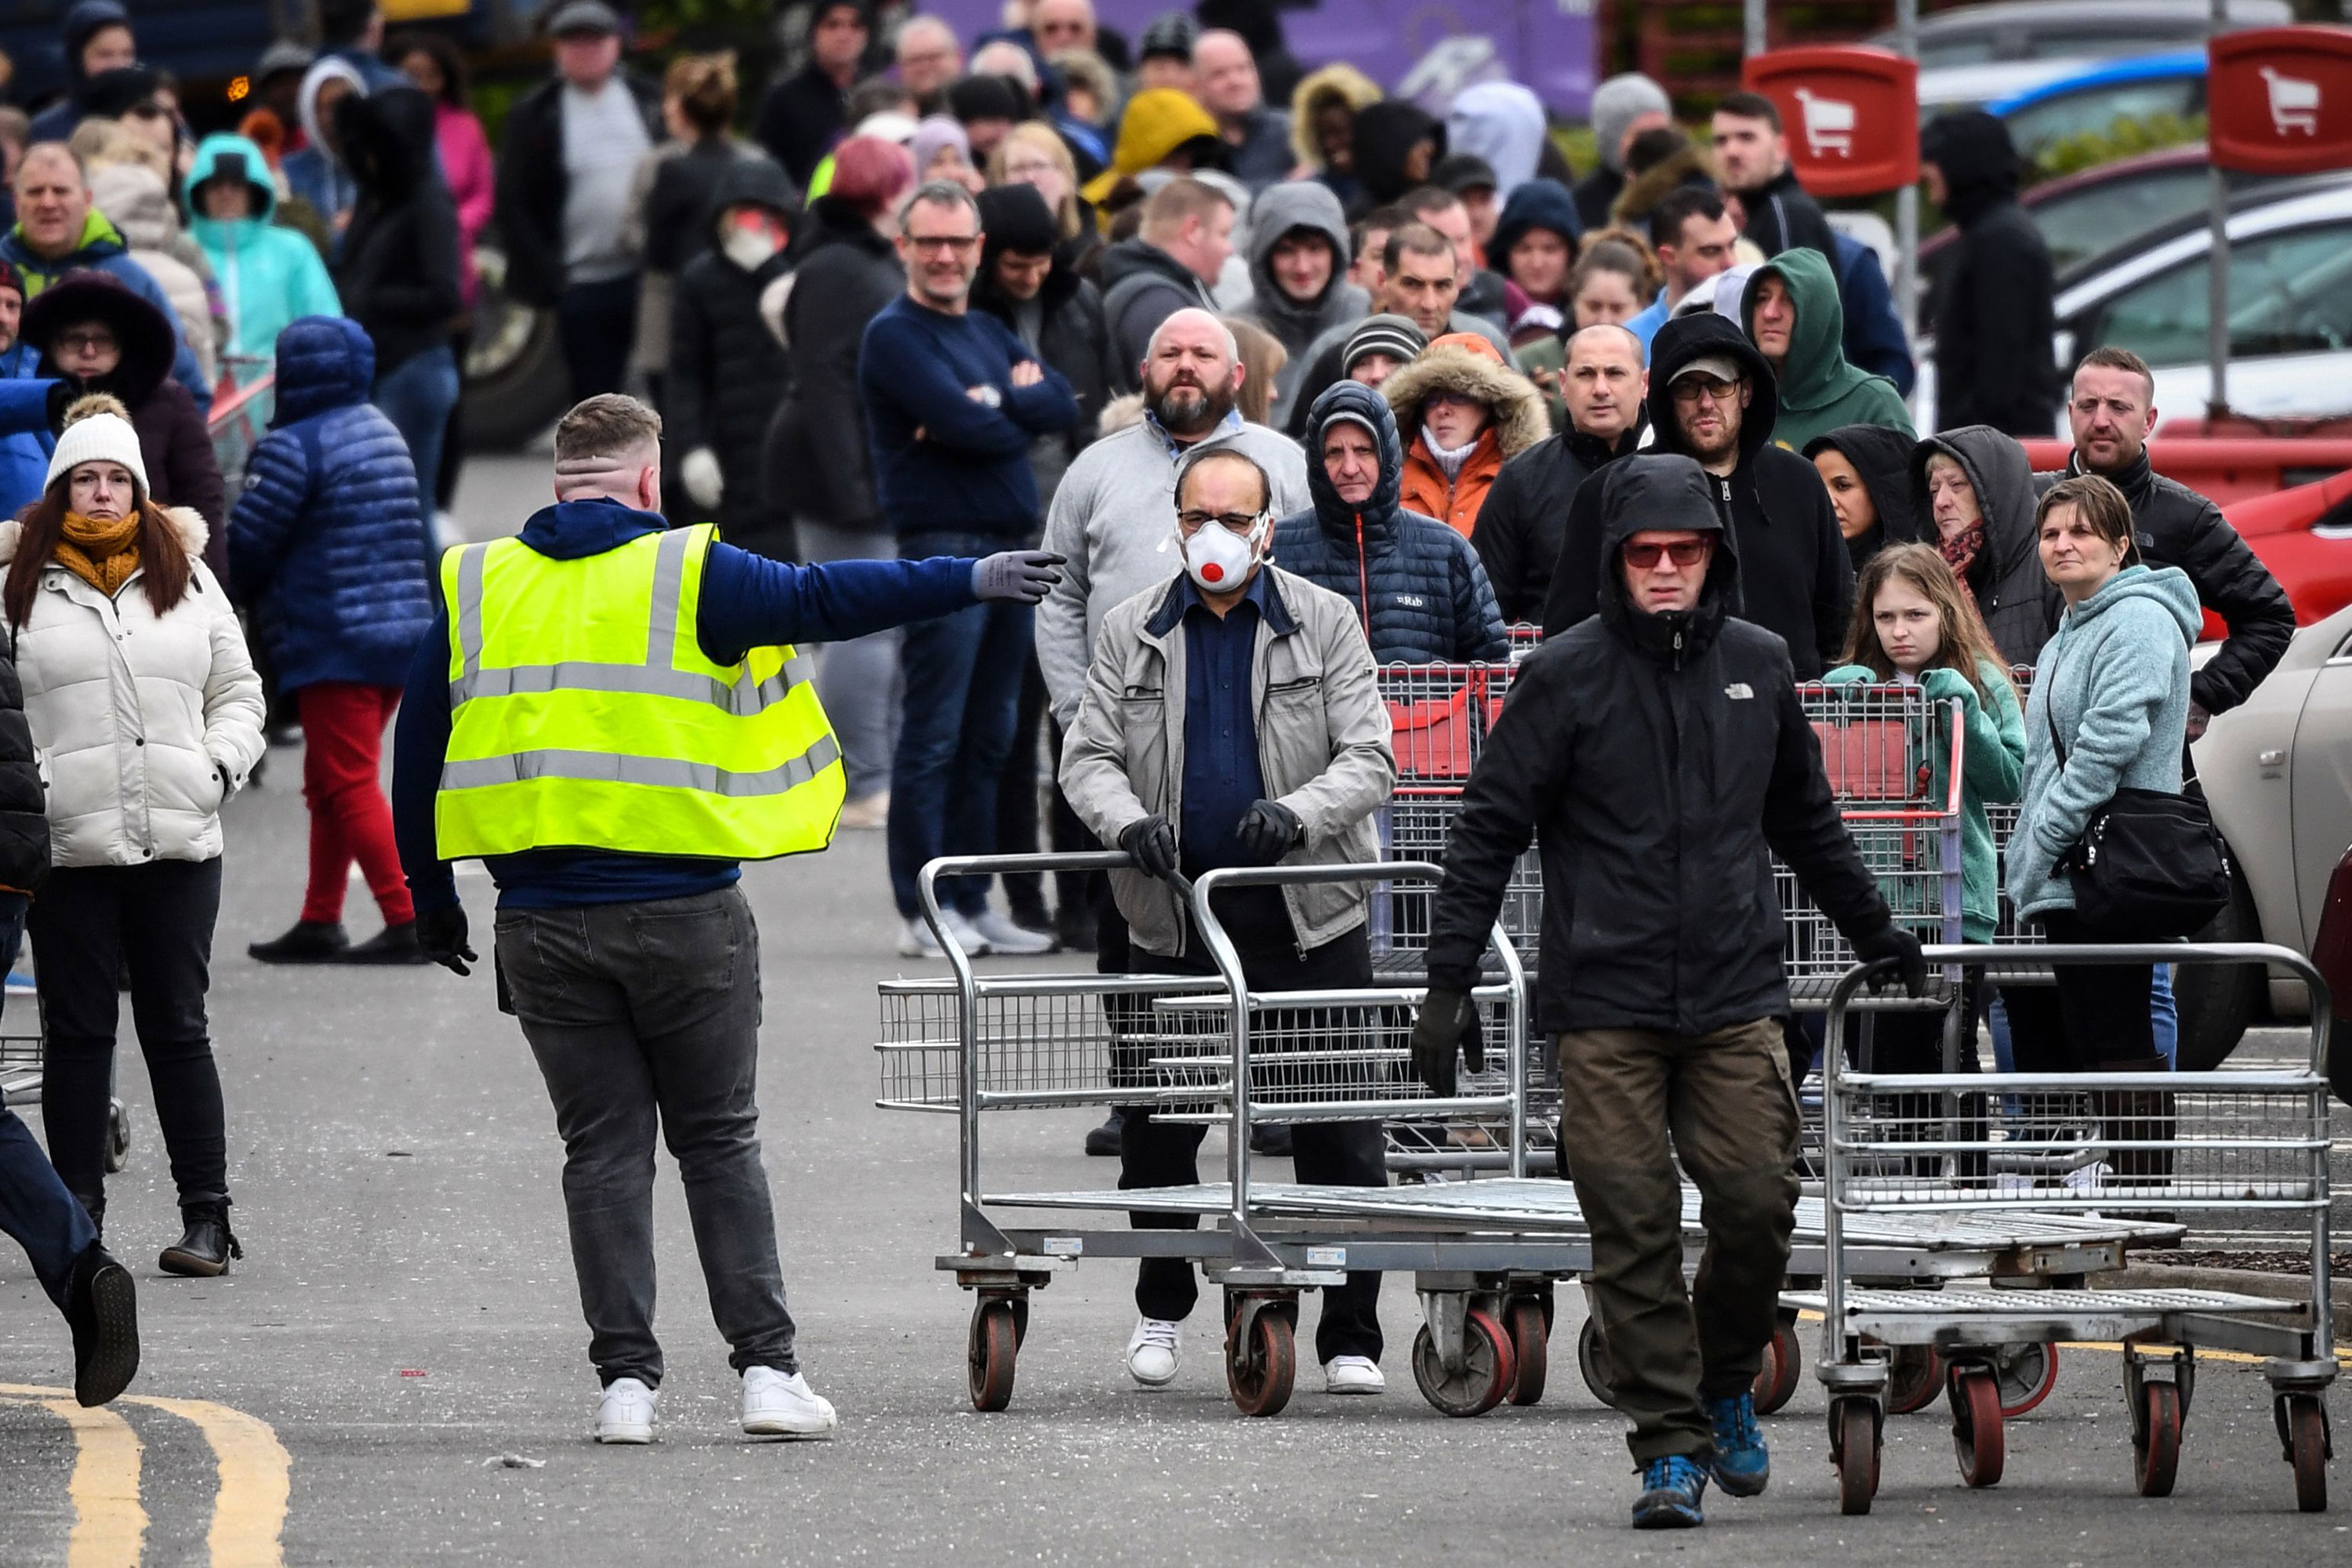 People wait in line at a Costco in Glasgow, Scotland, before it opens on March 21.